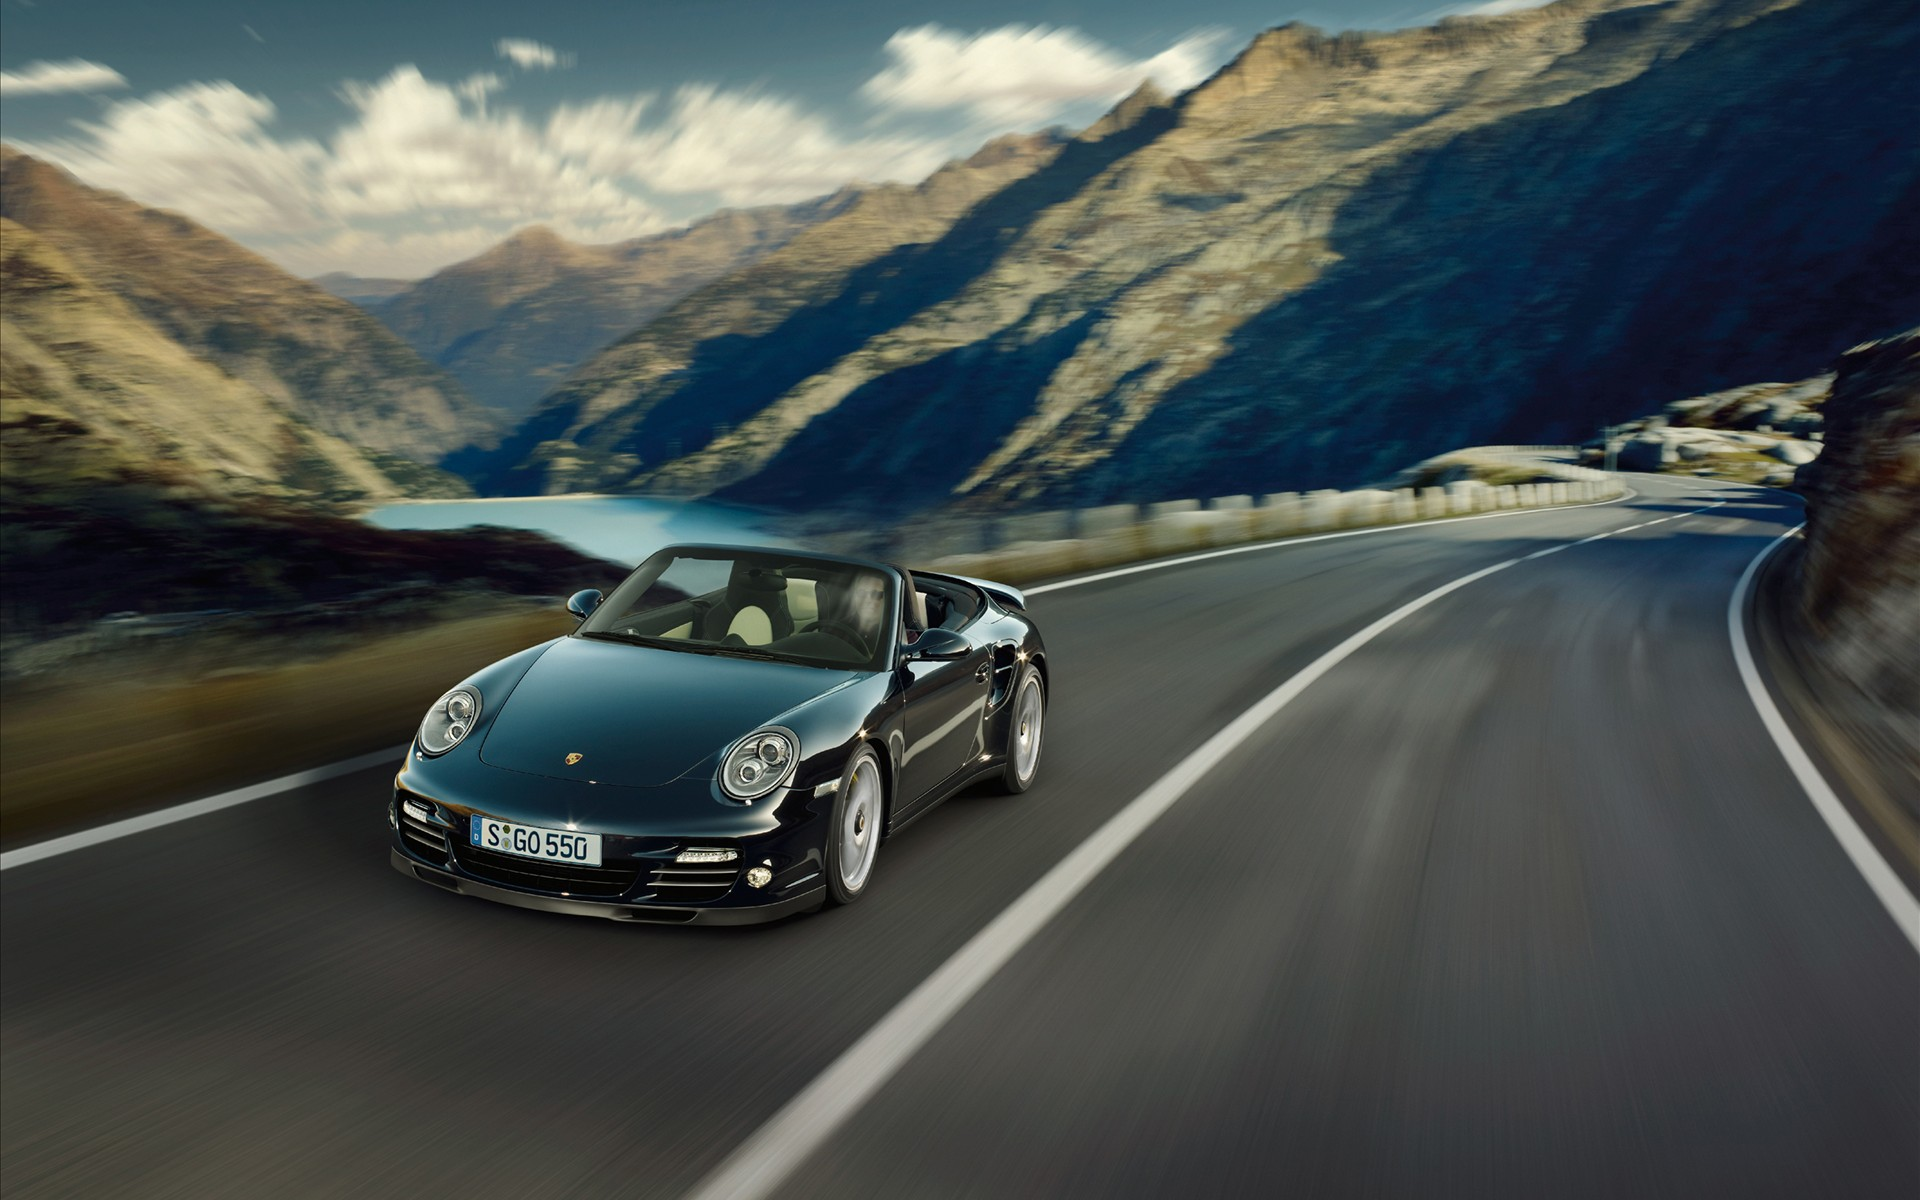 2011 Porsche 911 Turbo S 3 169.38 Kb